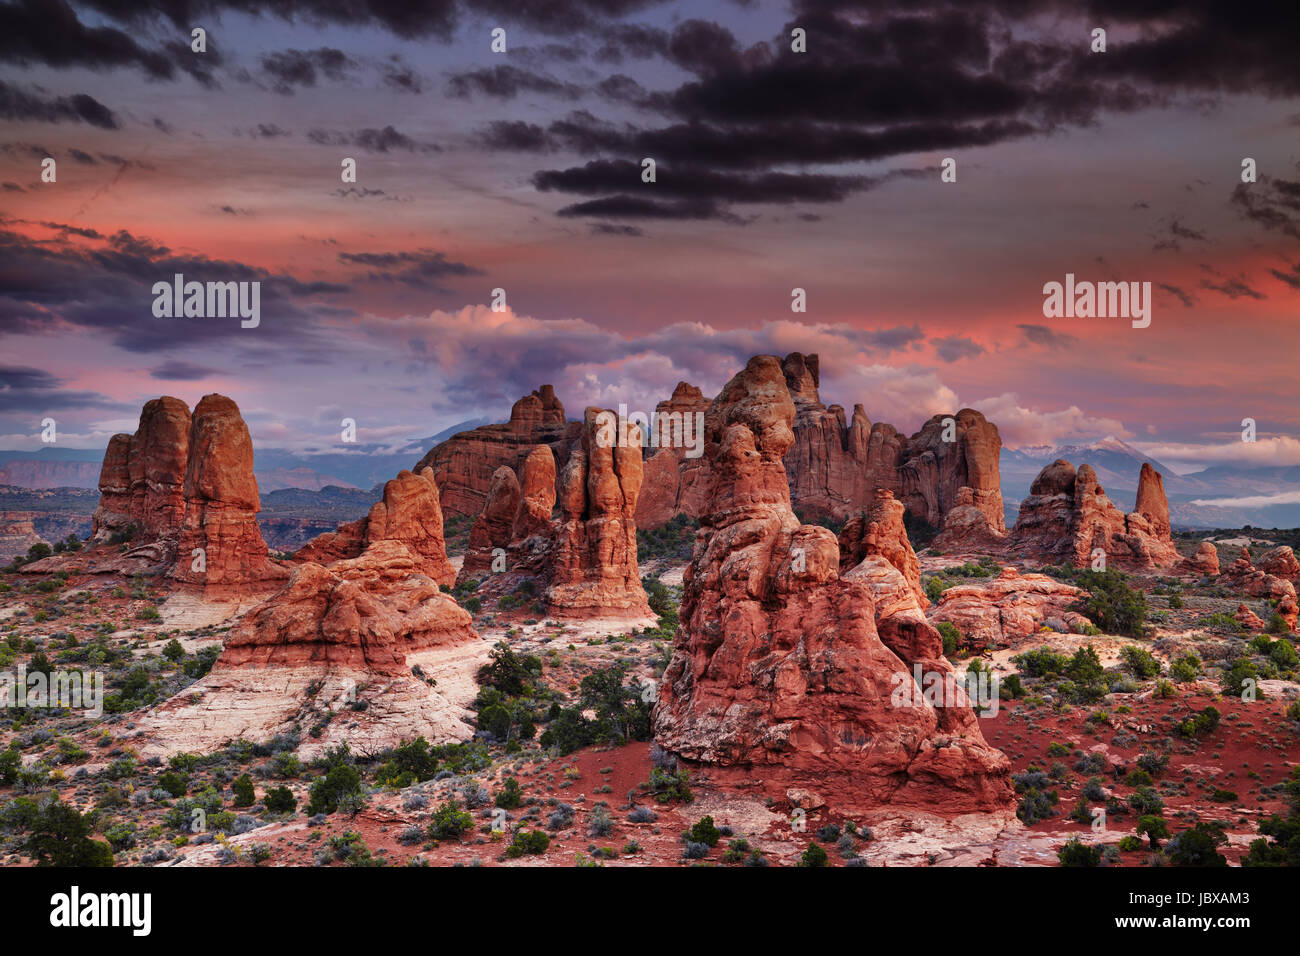 Colorful sunset in Arches National Park, Utah, USA Stock Photo